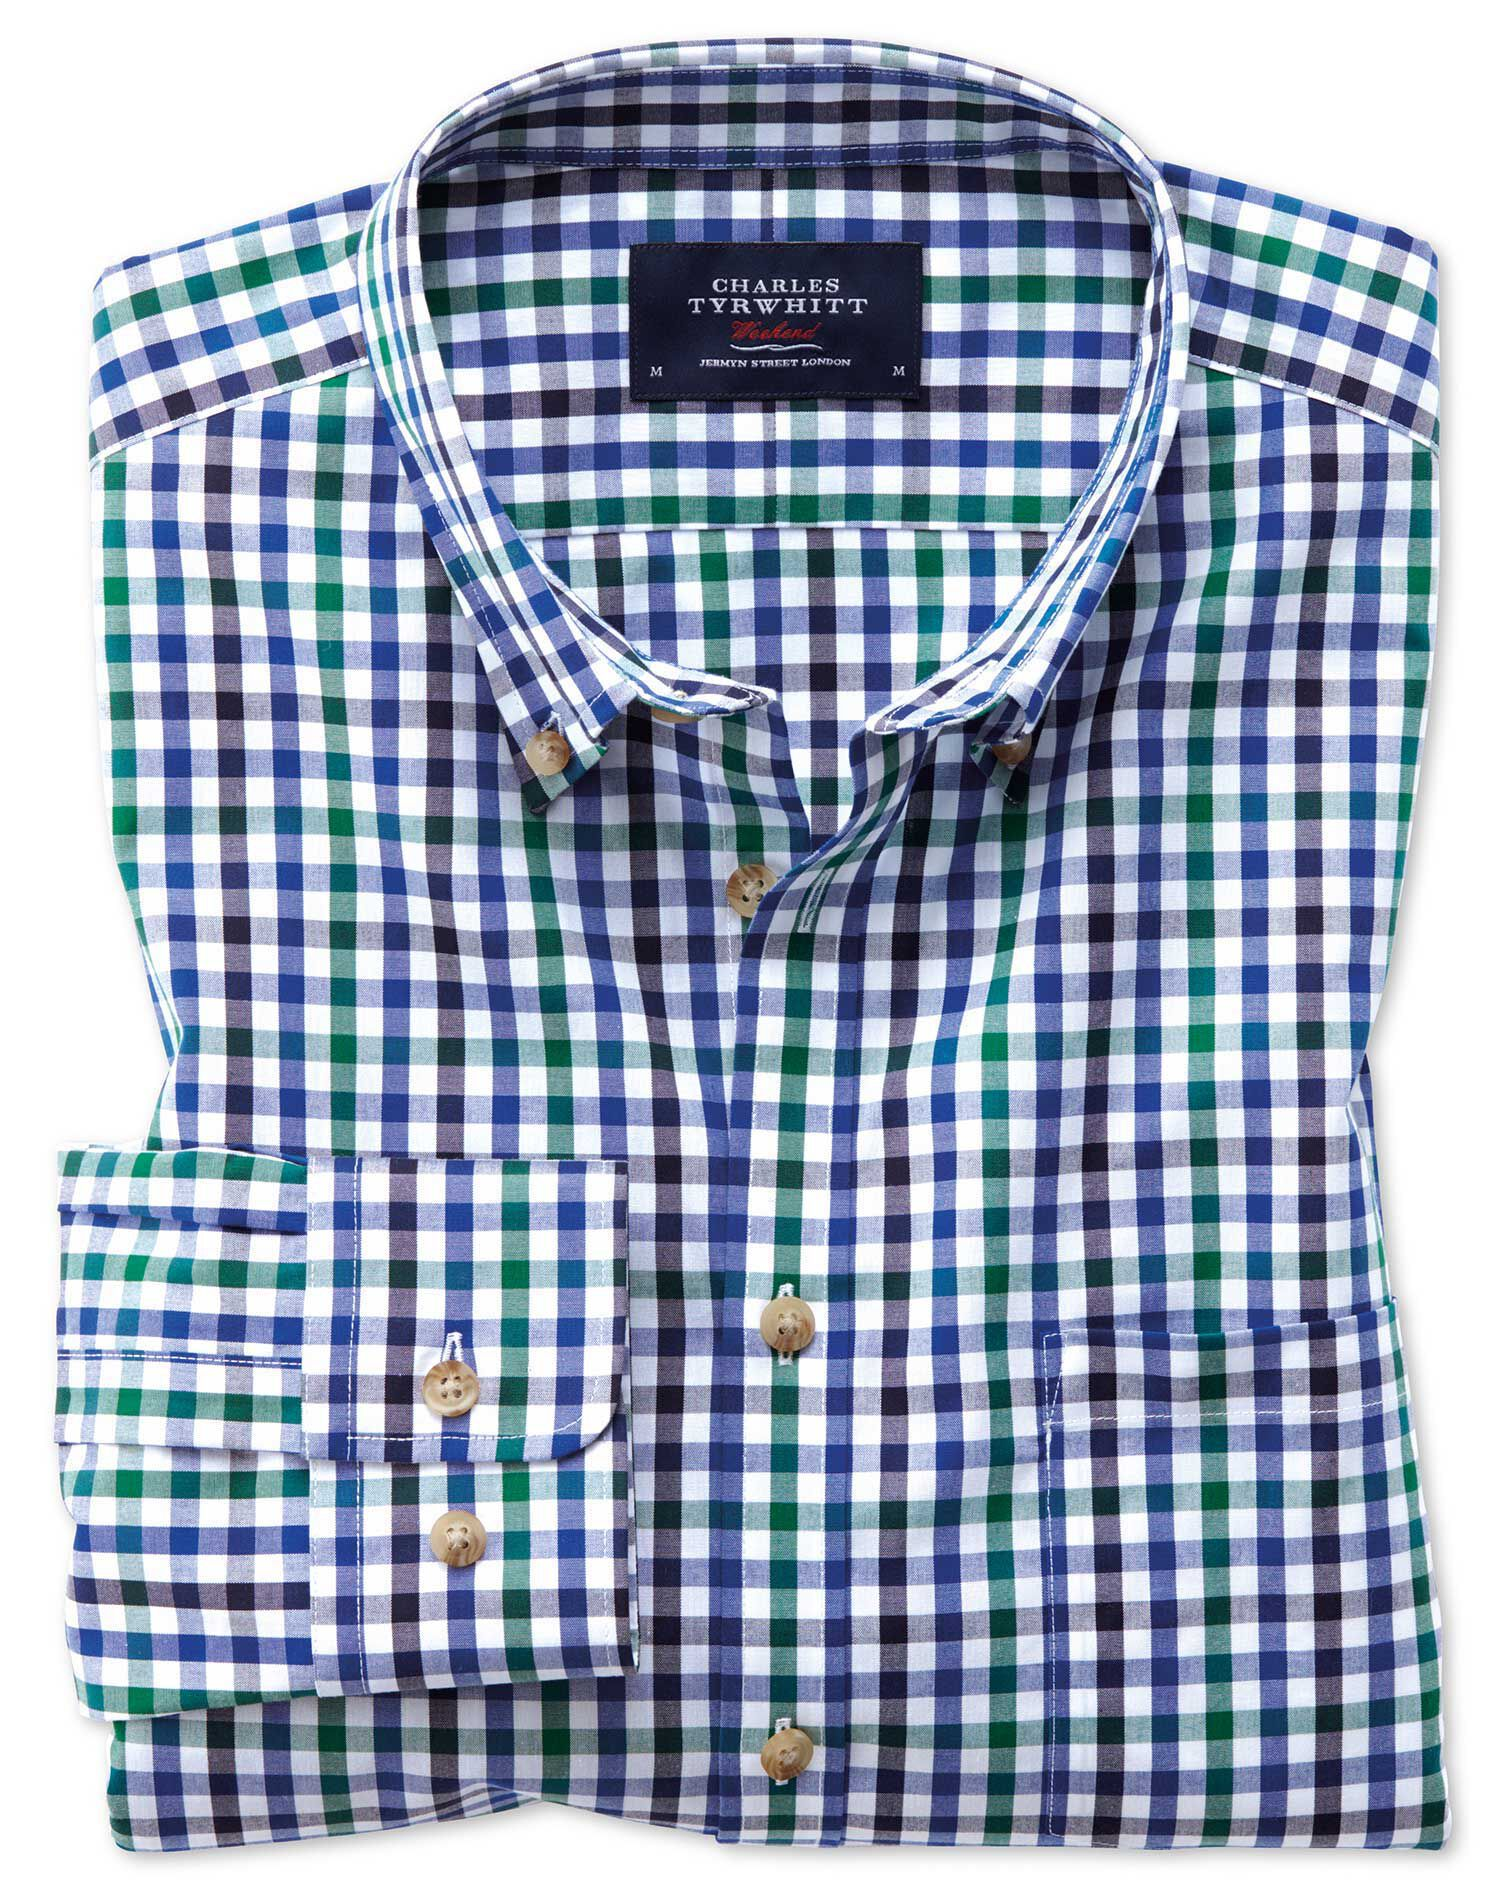 Slim Fit Button-Down Non-Iron Poplin Blue and Green Gingham Cotton Shirt Single Cuff Size Medium by